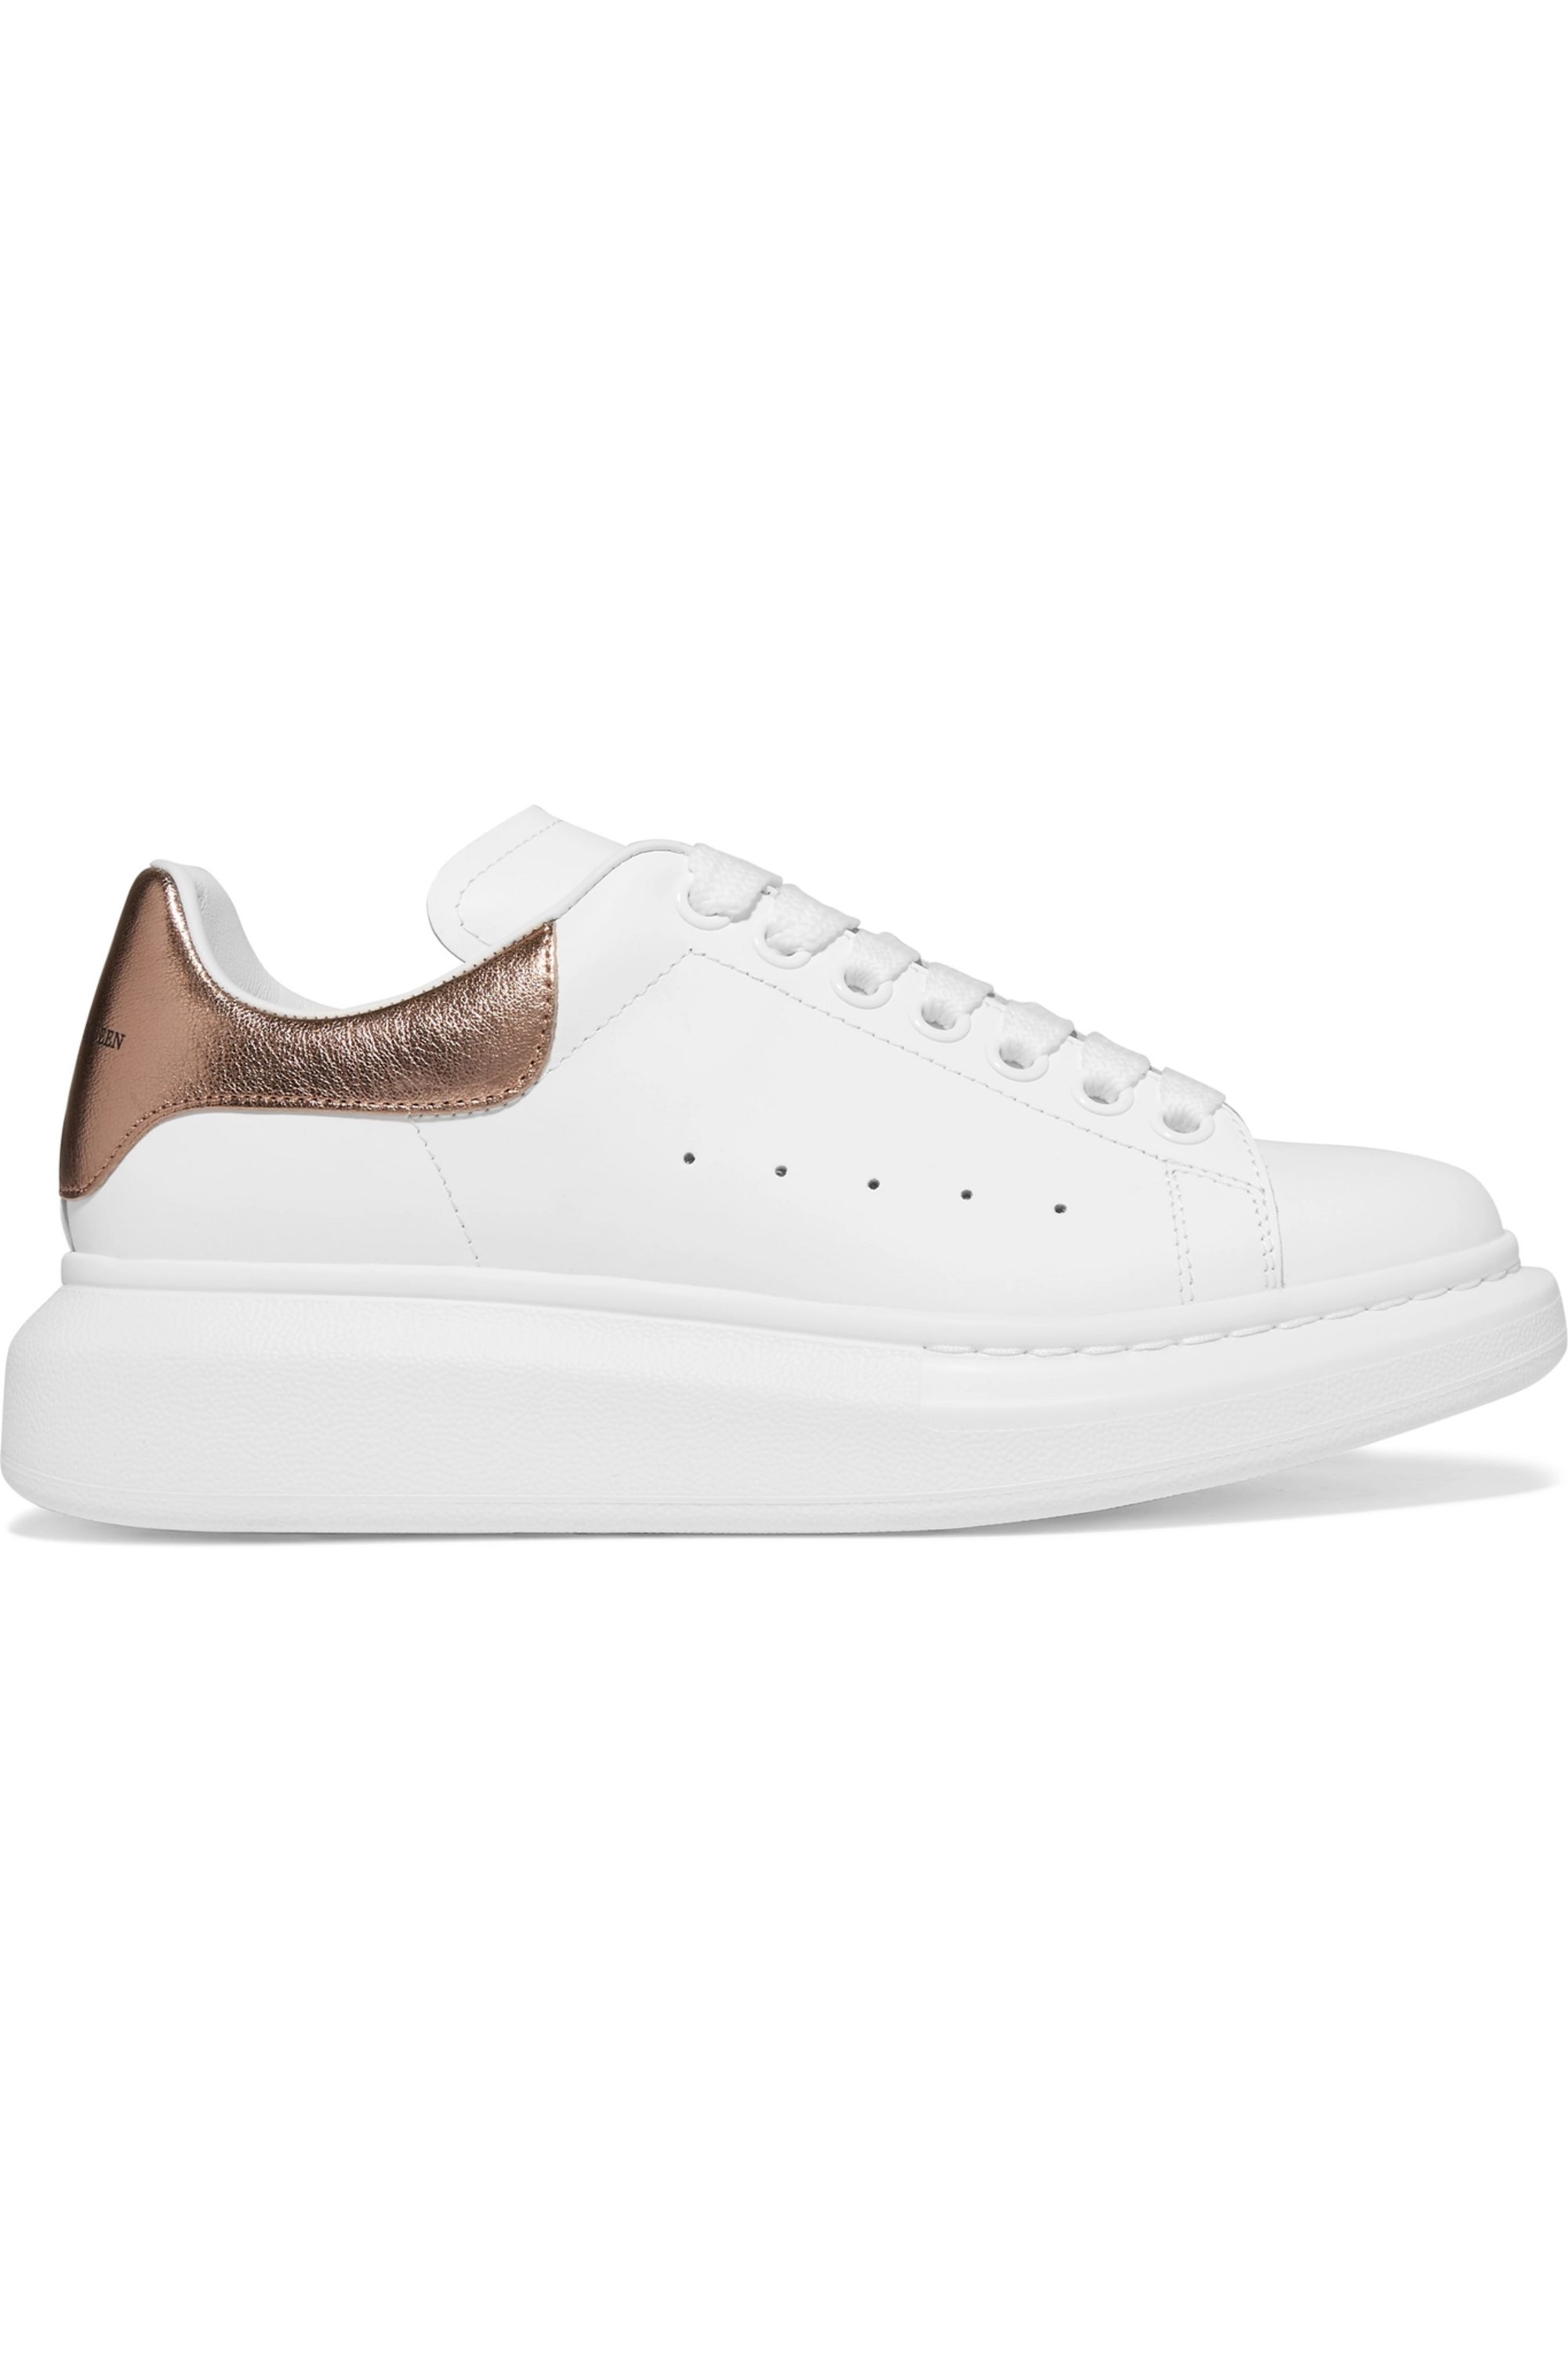 Alexander McQueen Metallic leather exaggerated-sole sneakers